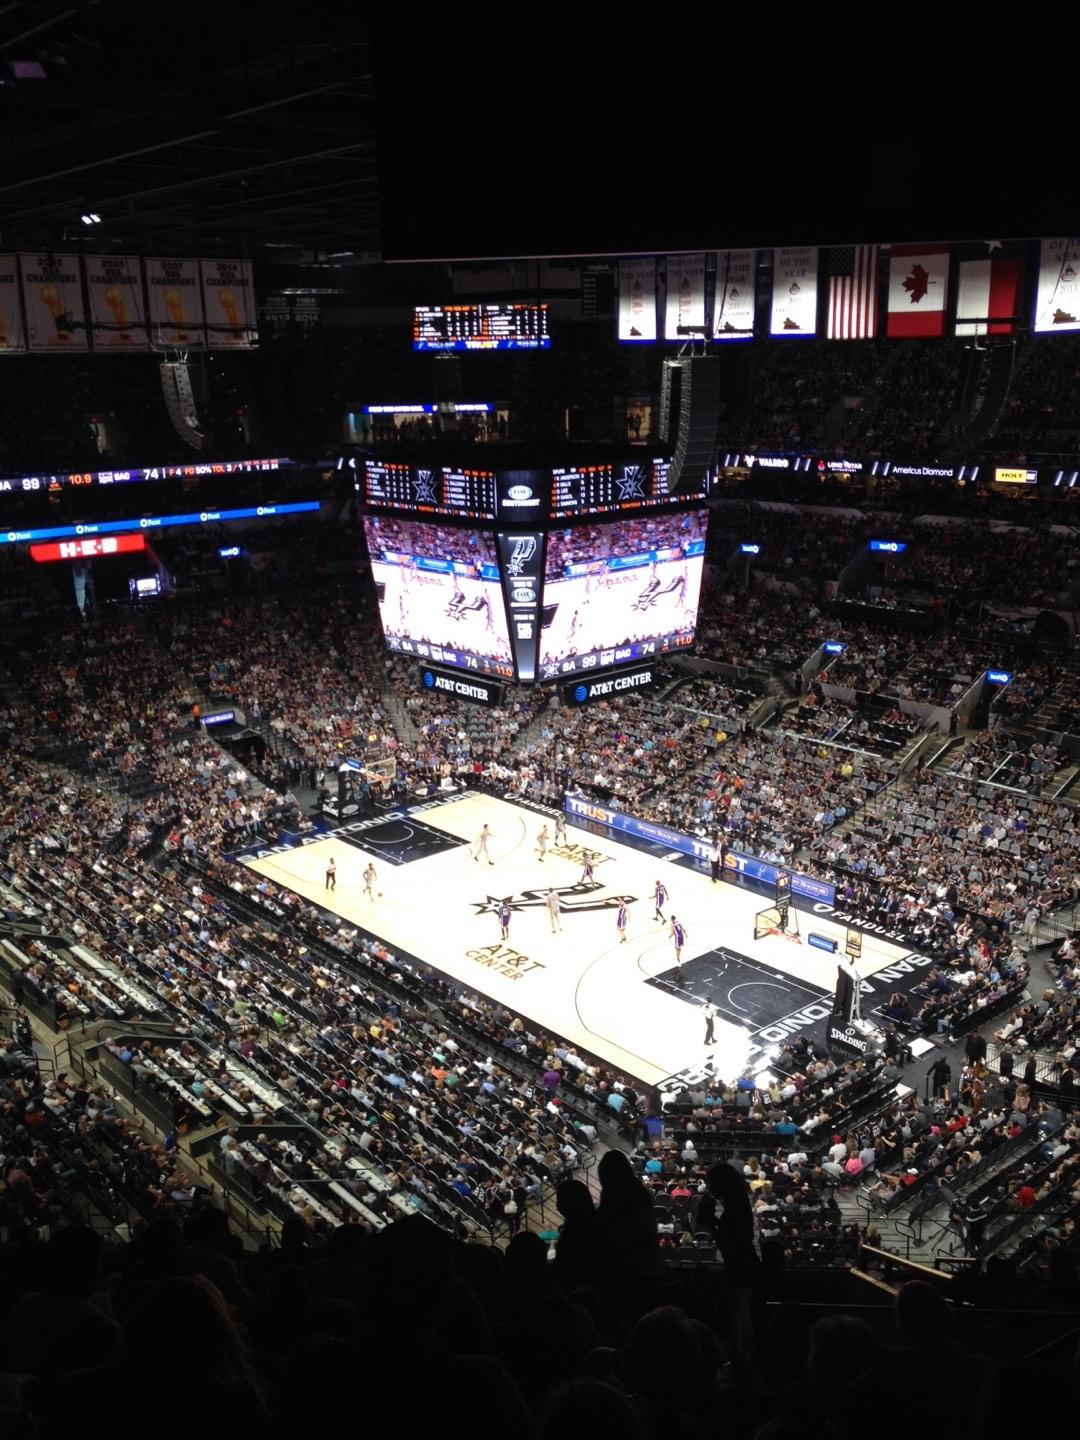 AT&T Center Section 220 Row 13 Seat 4